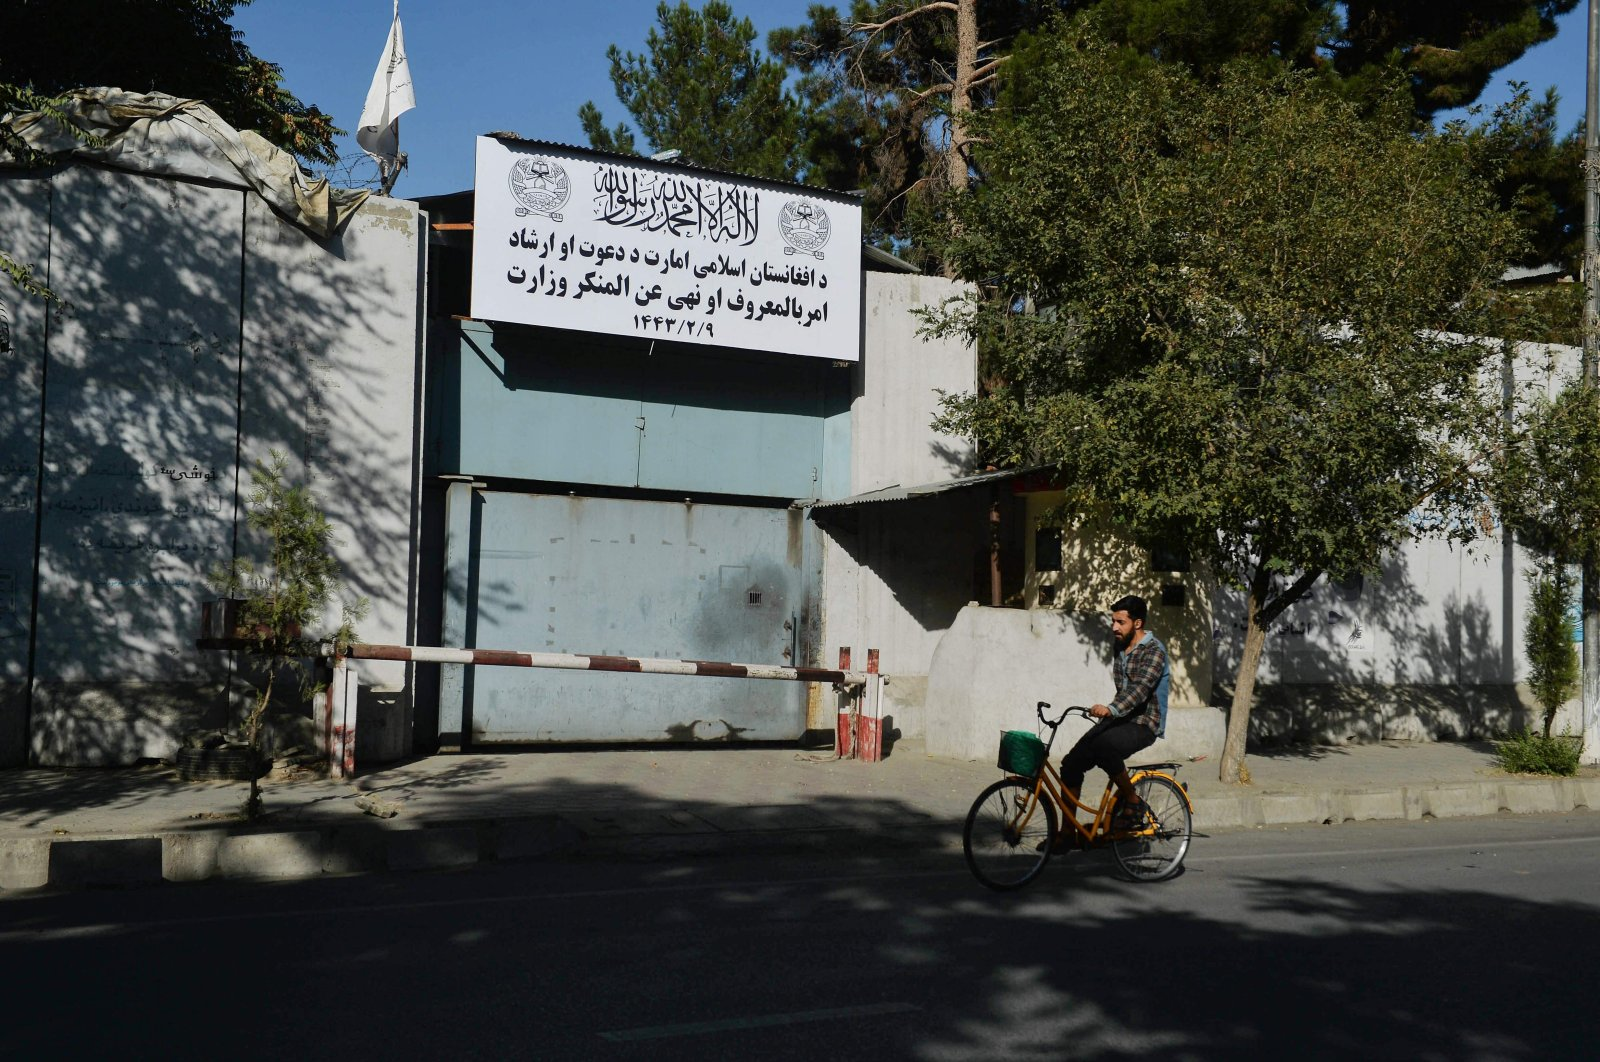 A man rides his bike past an entrance gate of the Ministry for the Promotion of Virtue and Prevention of Vice in Kabul, Afghanistan, Sept. 17, 2021. (Photo by Hoshang Hashimi via AFP)